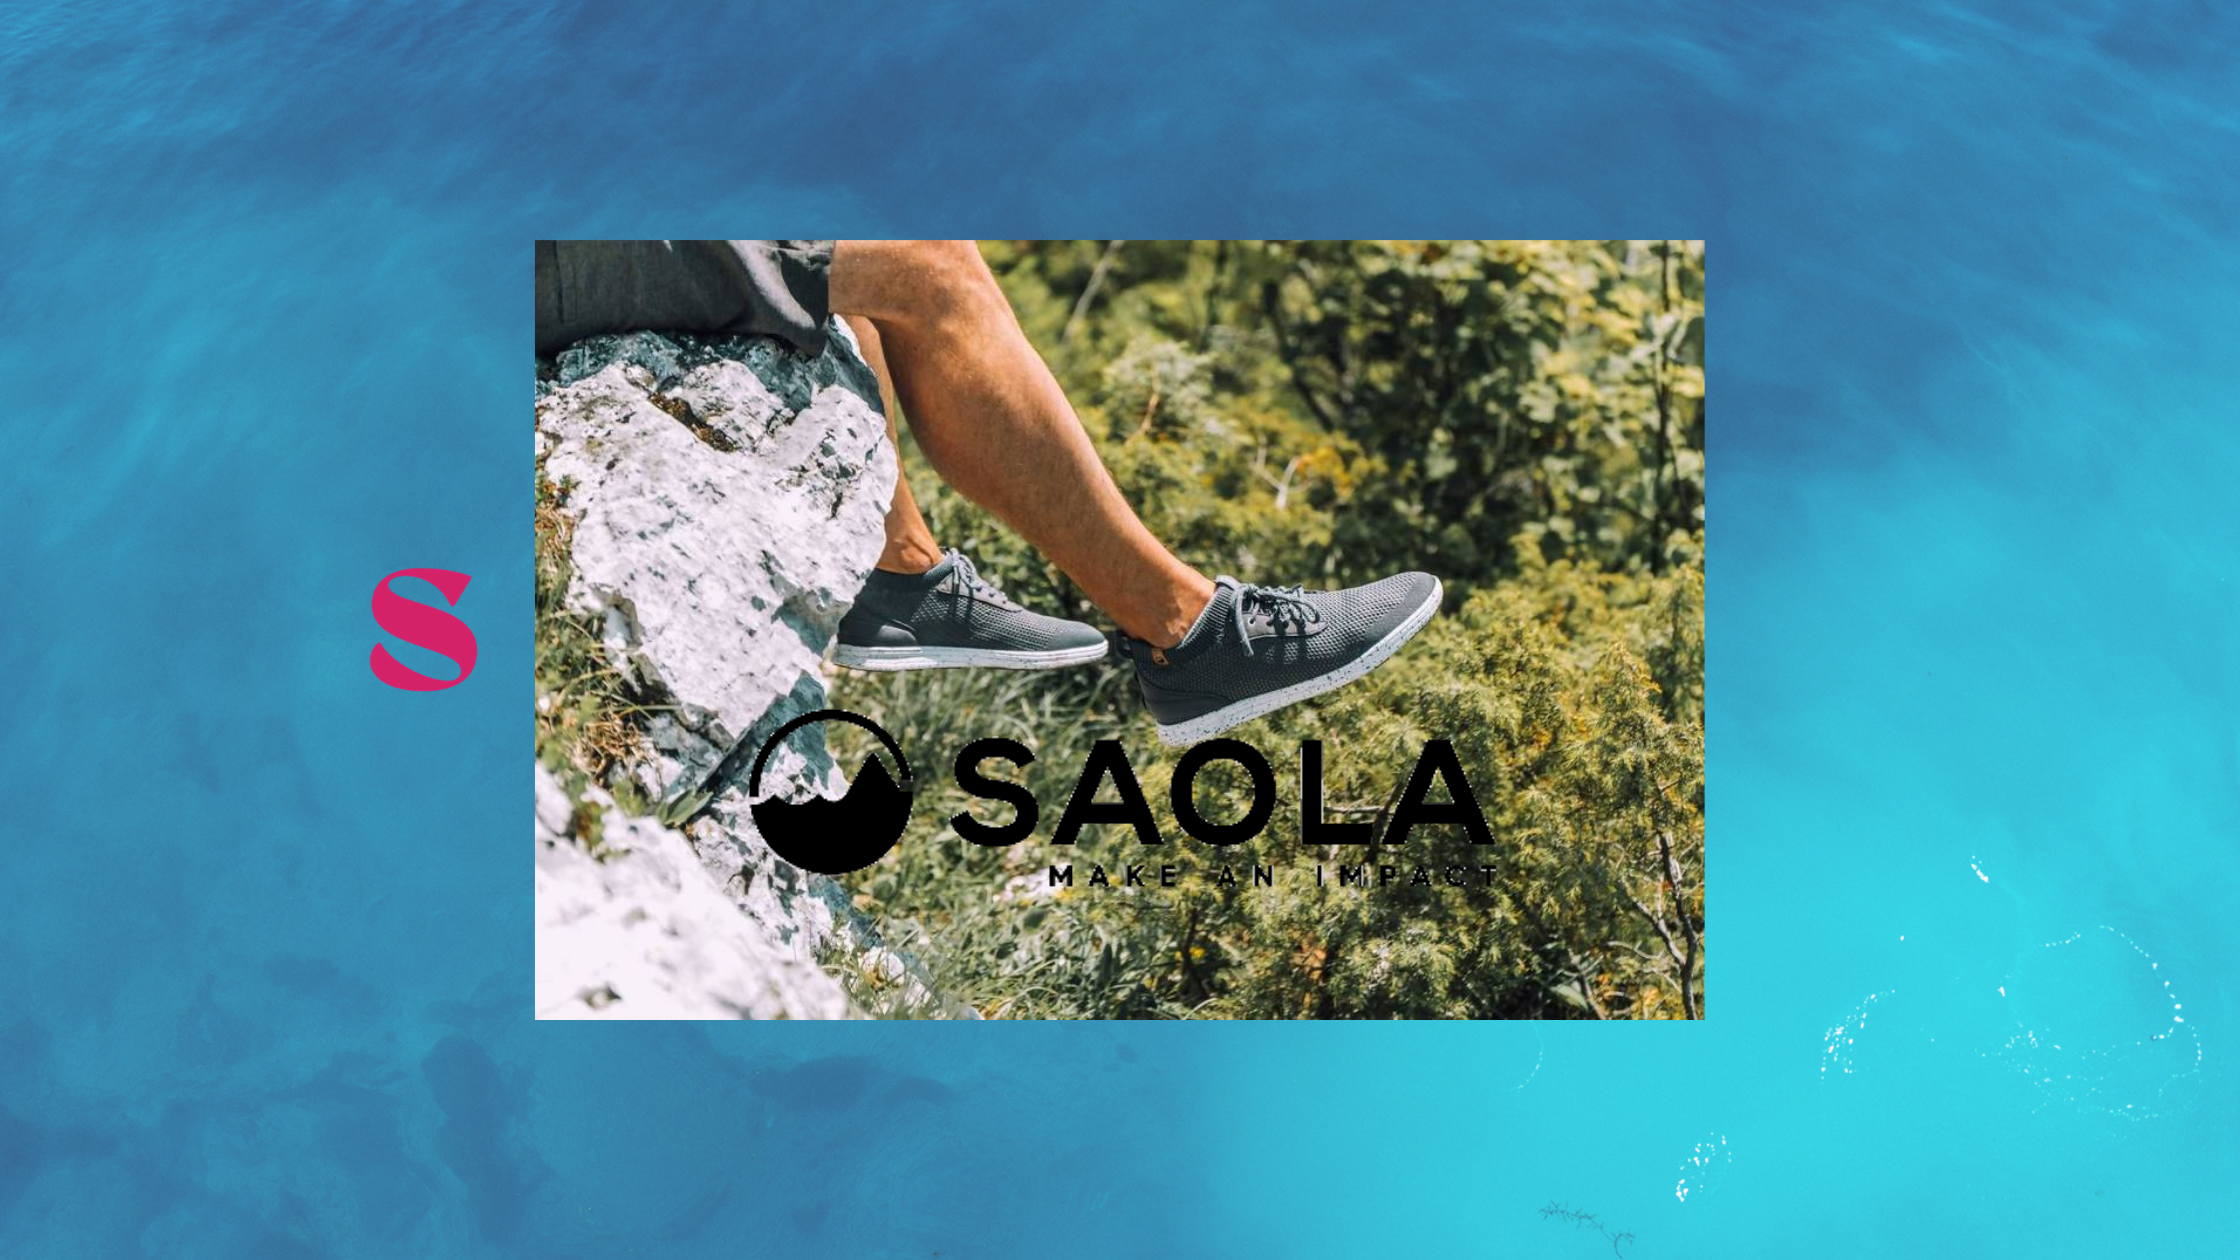 Sahoja and Saola shoes: sustainable footwear for men and women